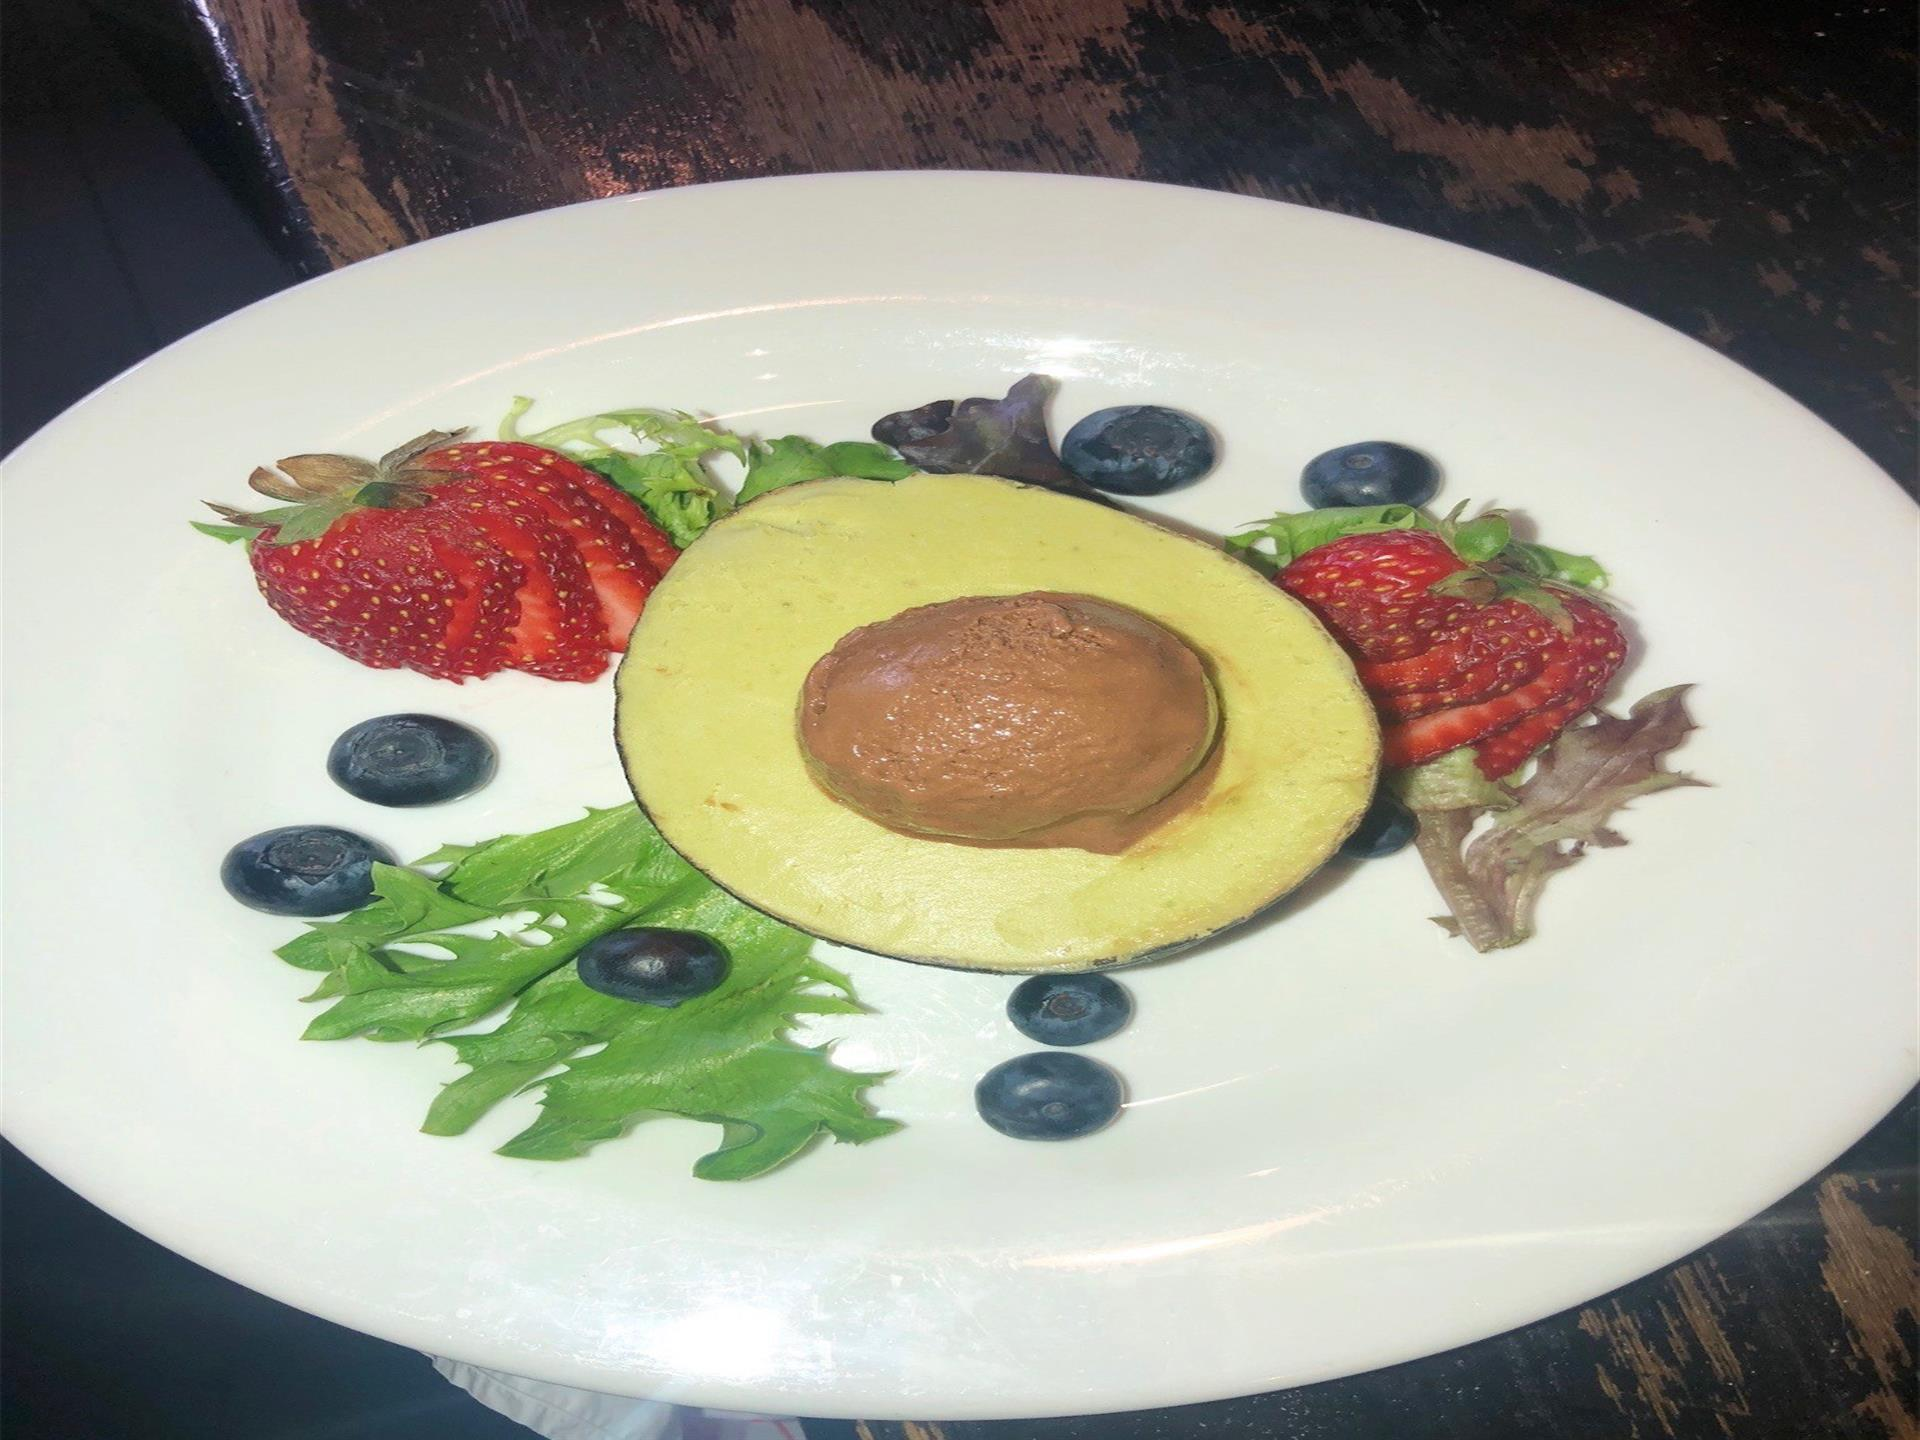 chocolate iccream in an avocado with strawberries and blueberries